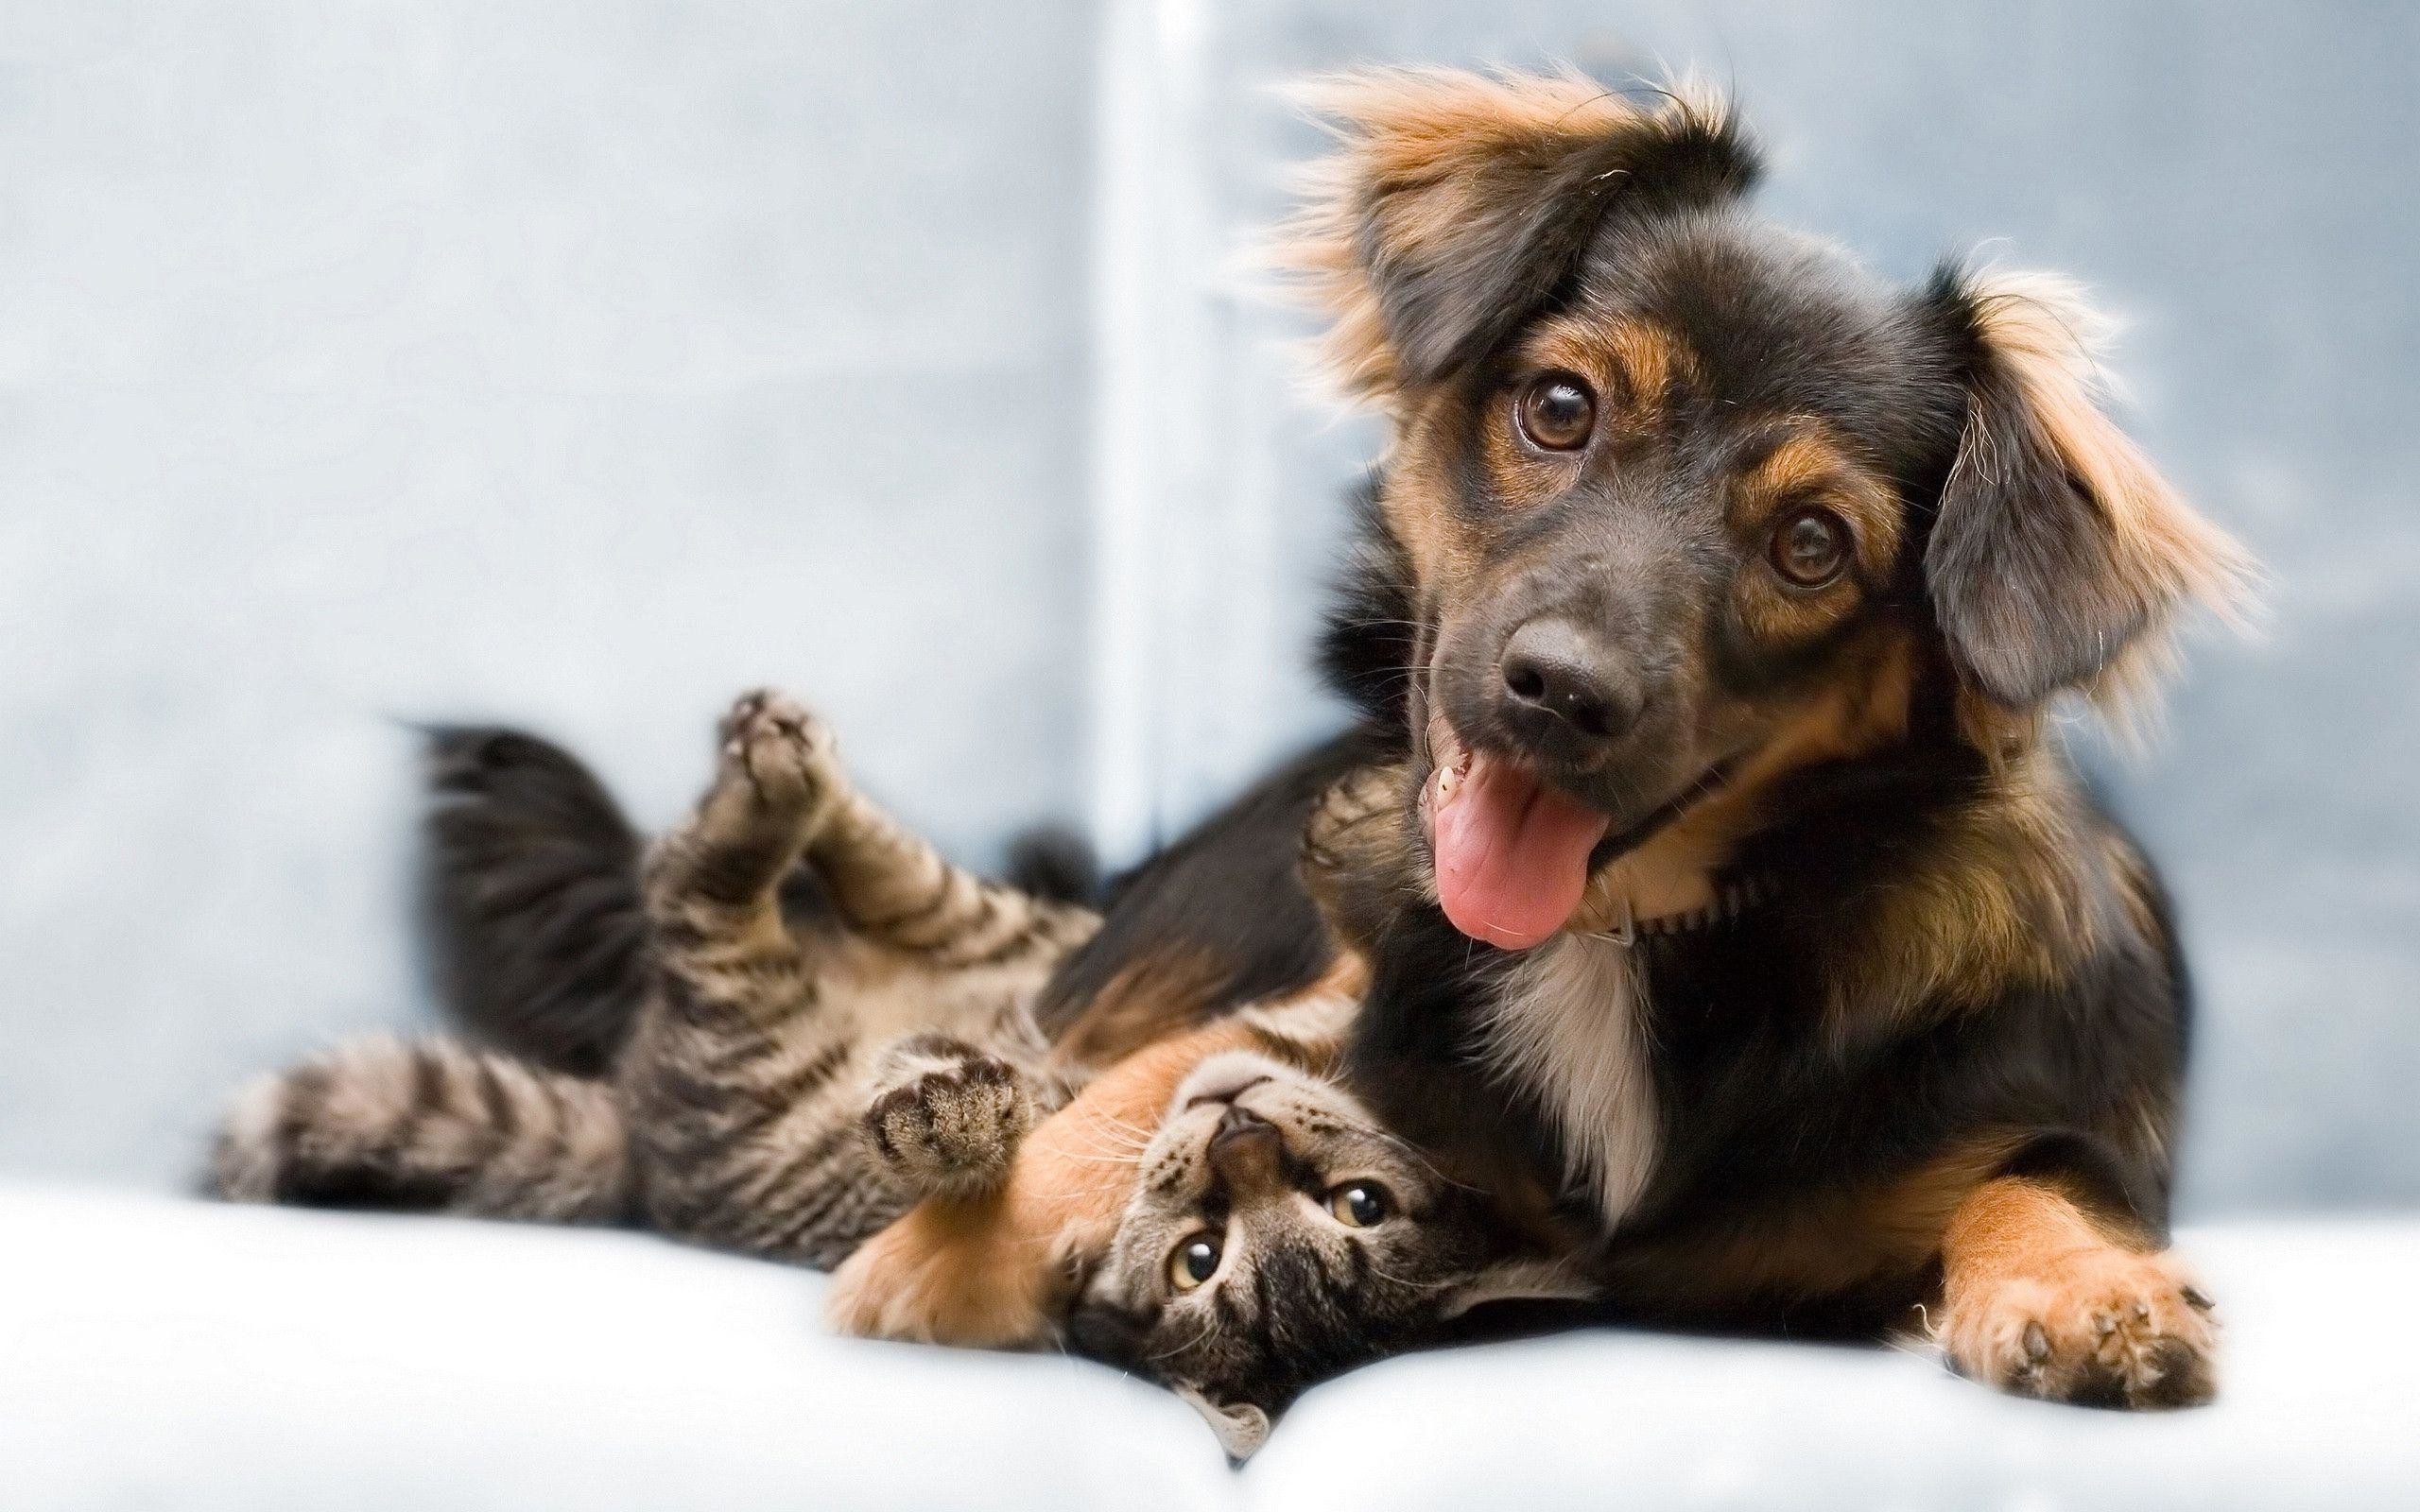 2560x1600 Wallpapers For Funny Cat And Dog